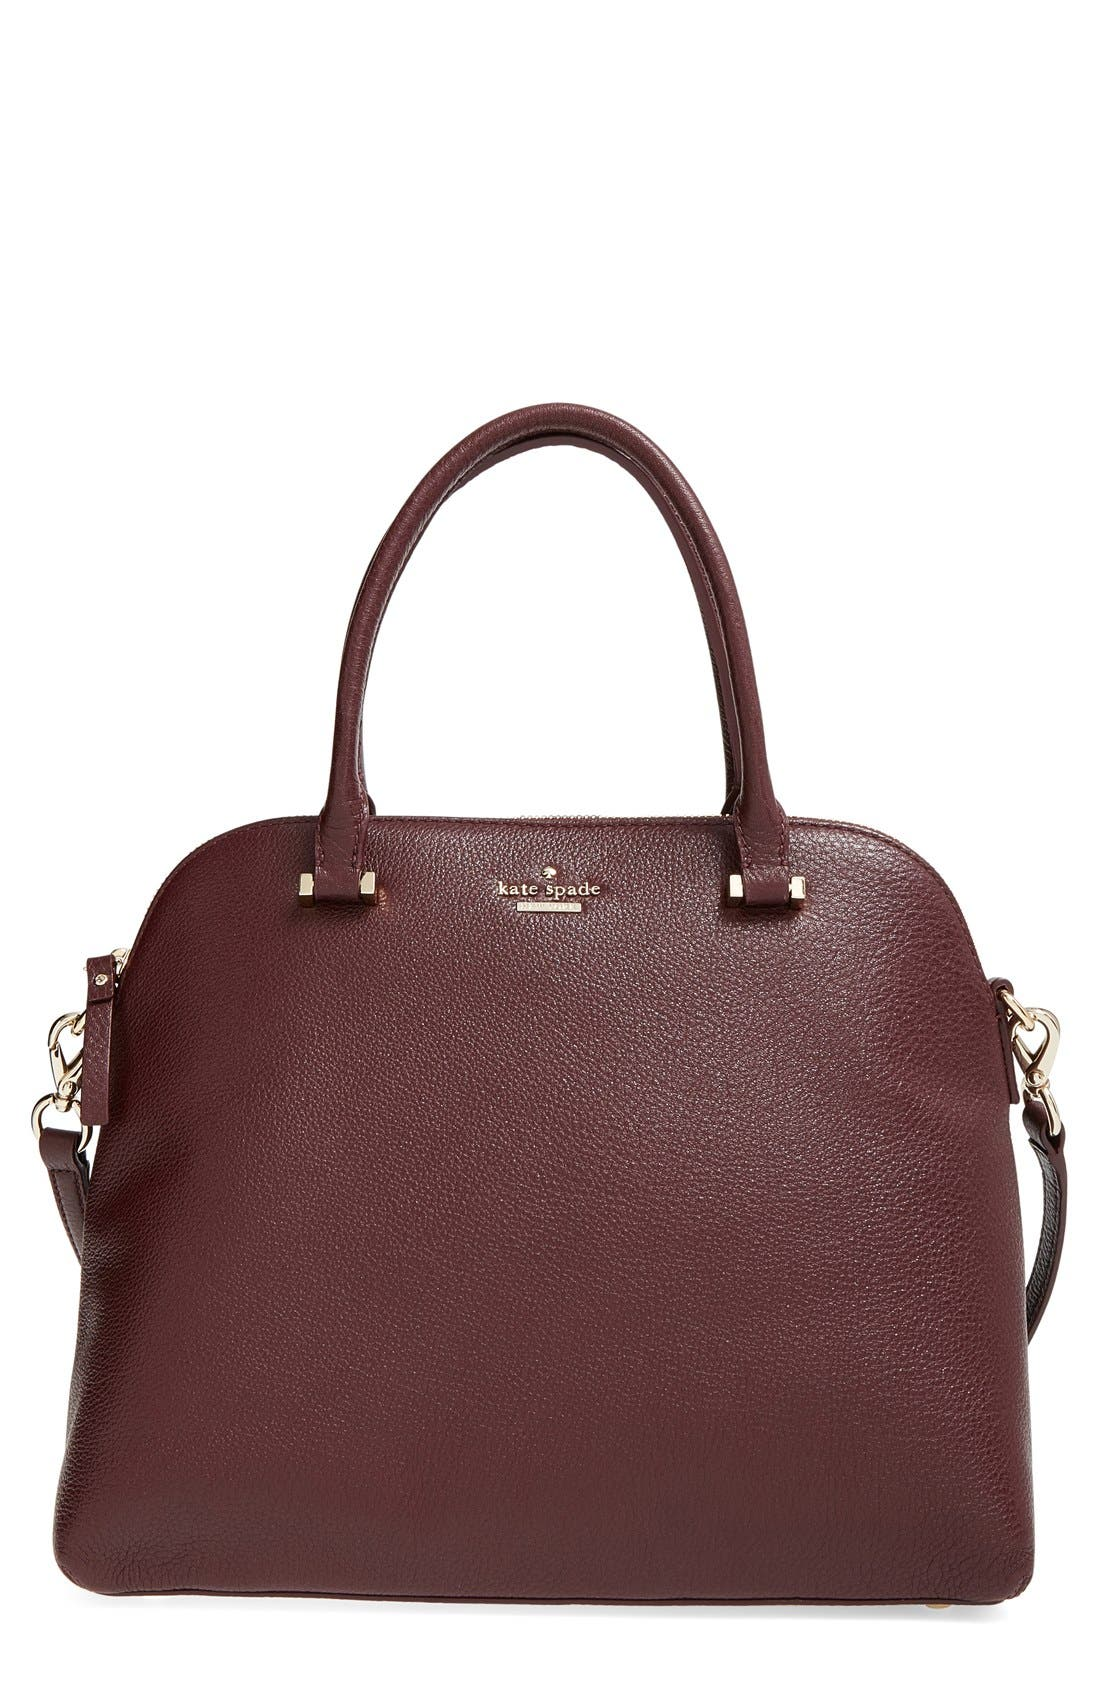 Alternate Image 1 Selected - kate spade new york 'emerson place - margot' satchel